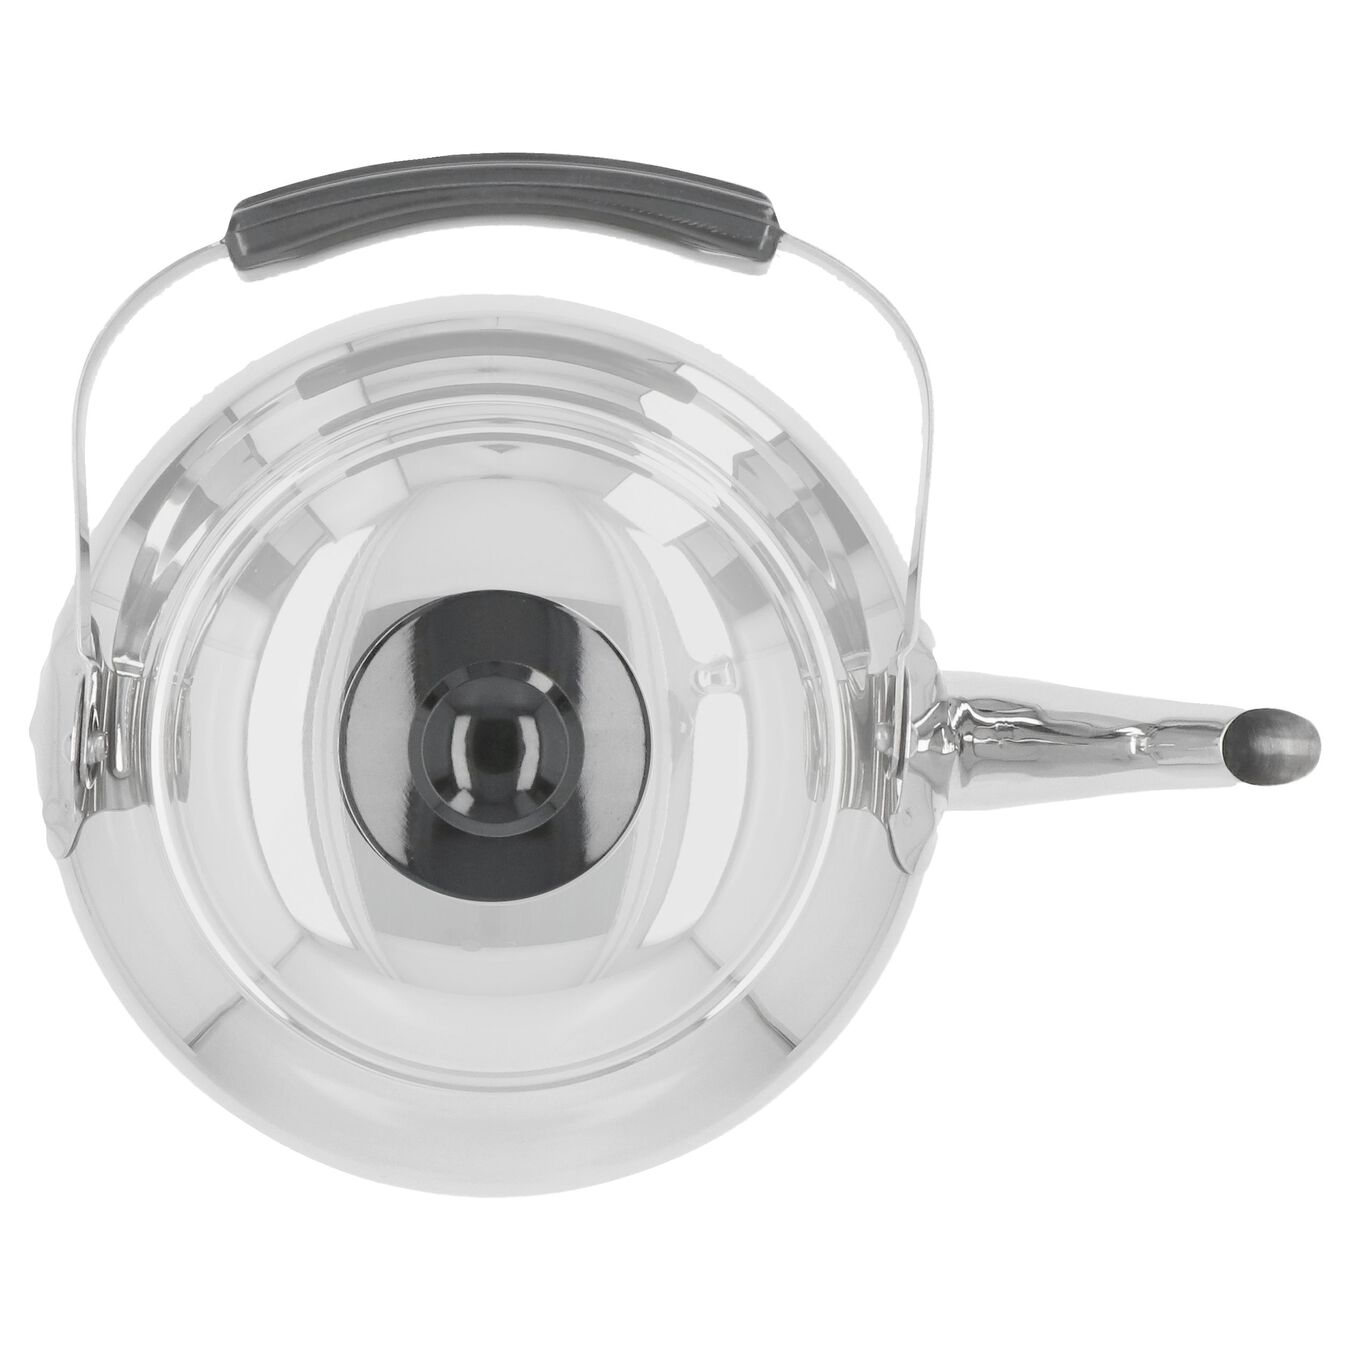 4.2 qt Tea Kettle, 18/10 Stainless Steel ,,large 3